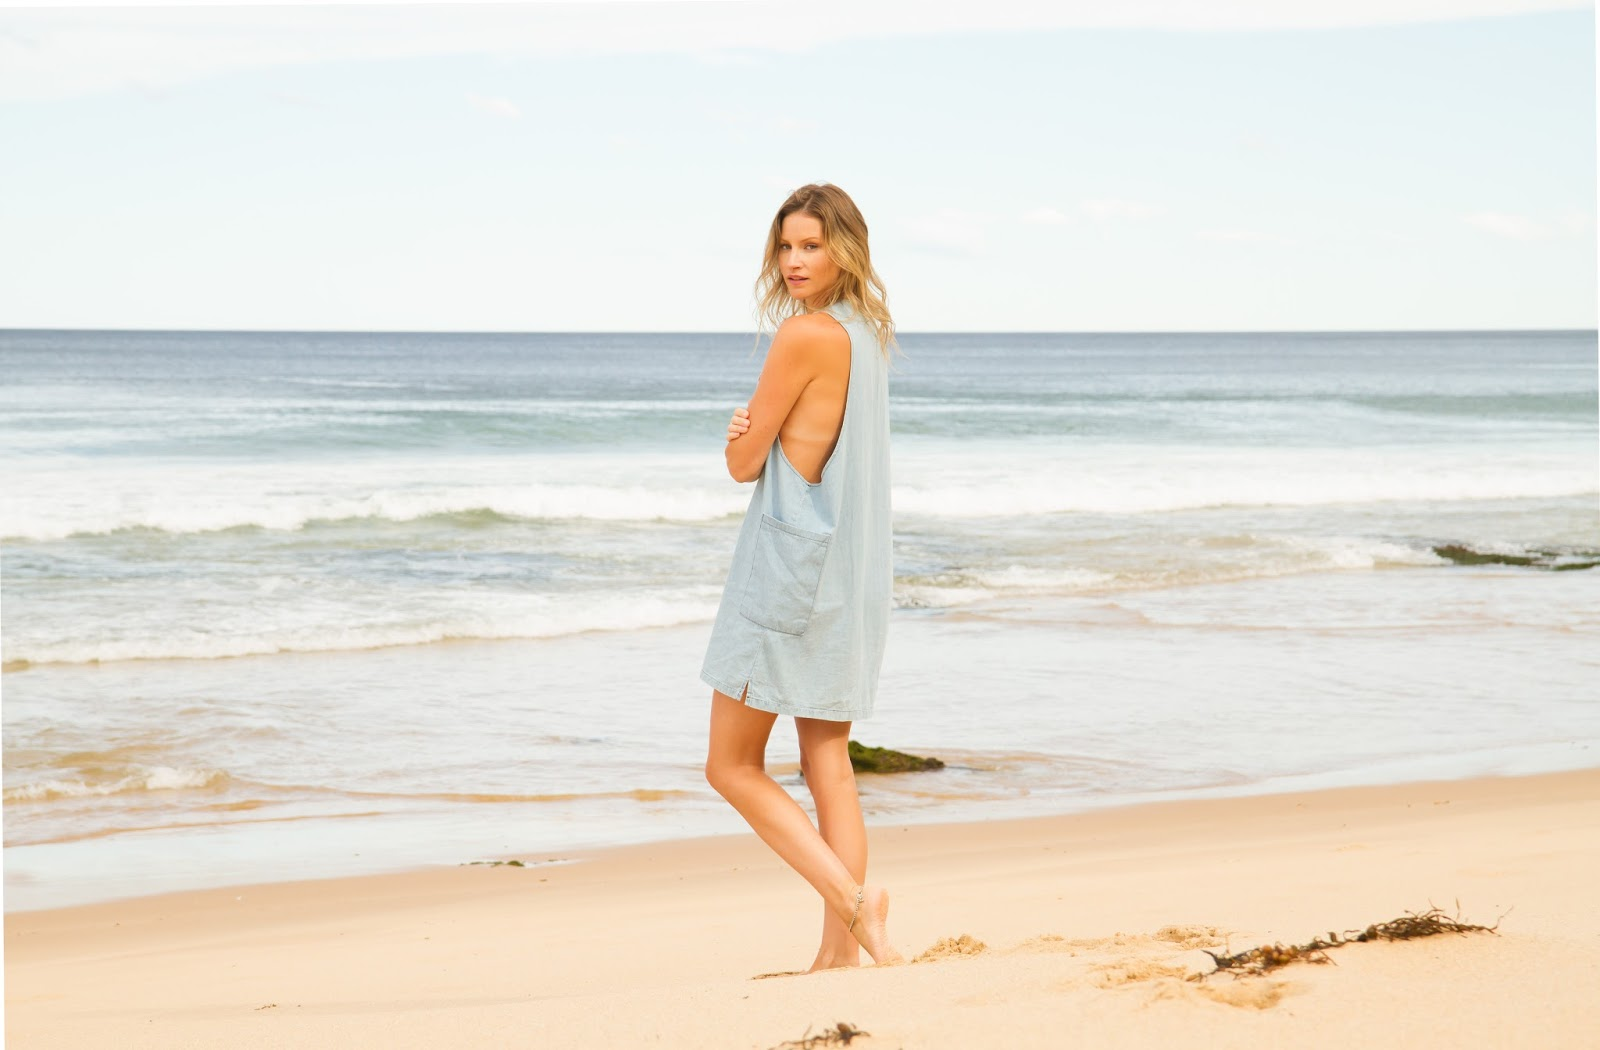 fashion blogger, alison hutchinson, at Garie Beach in Sydney, Australia